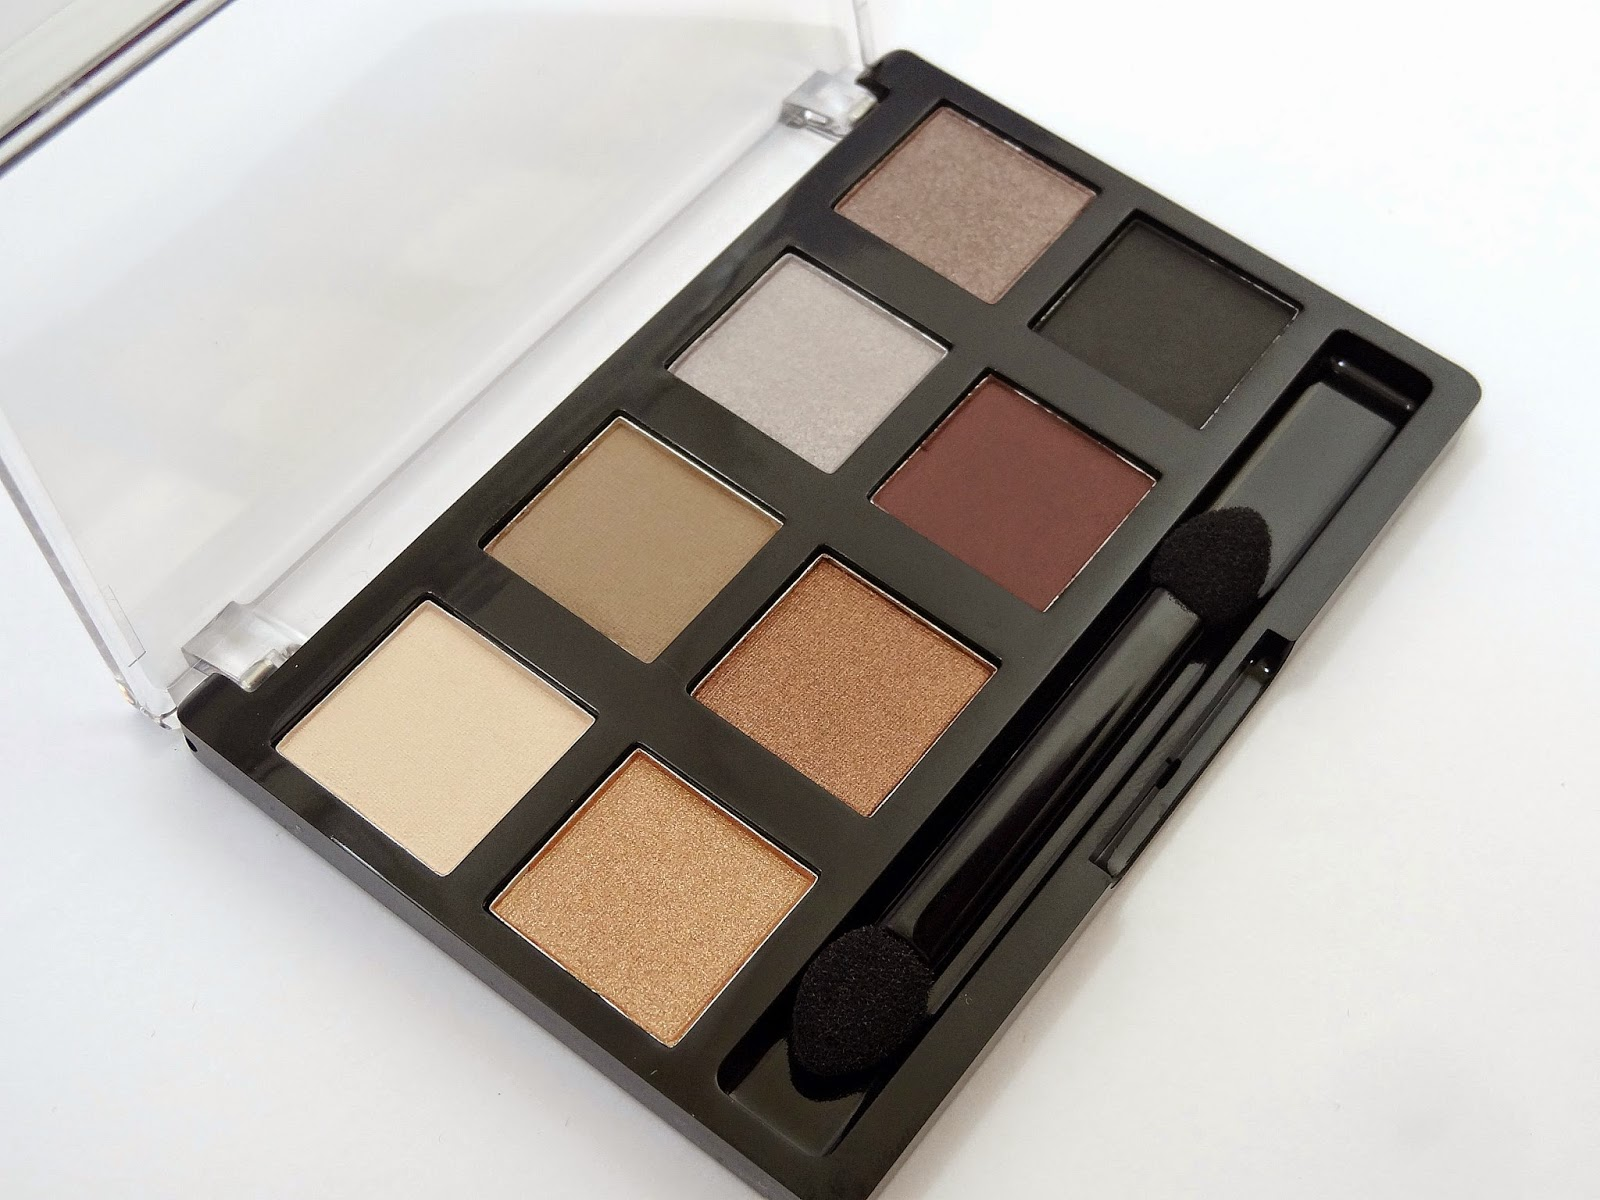 Avon True Color 8-in-1 Eyeshadow Palette Not so Neutral